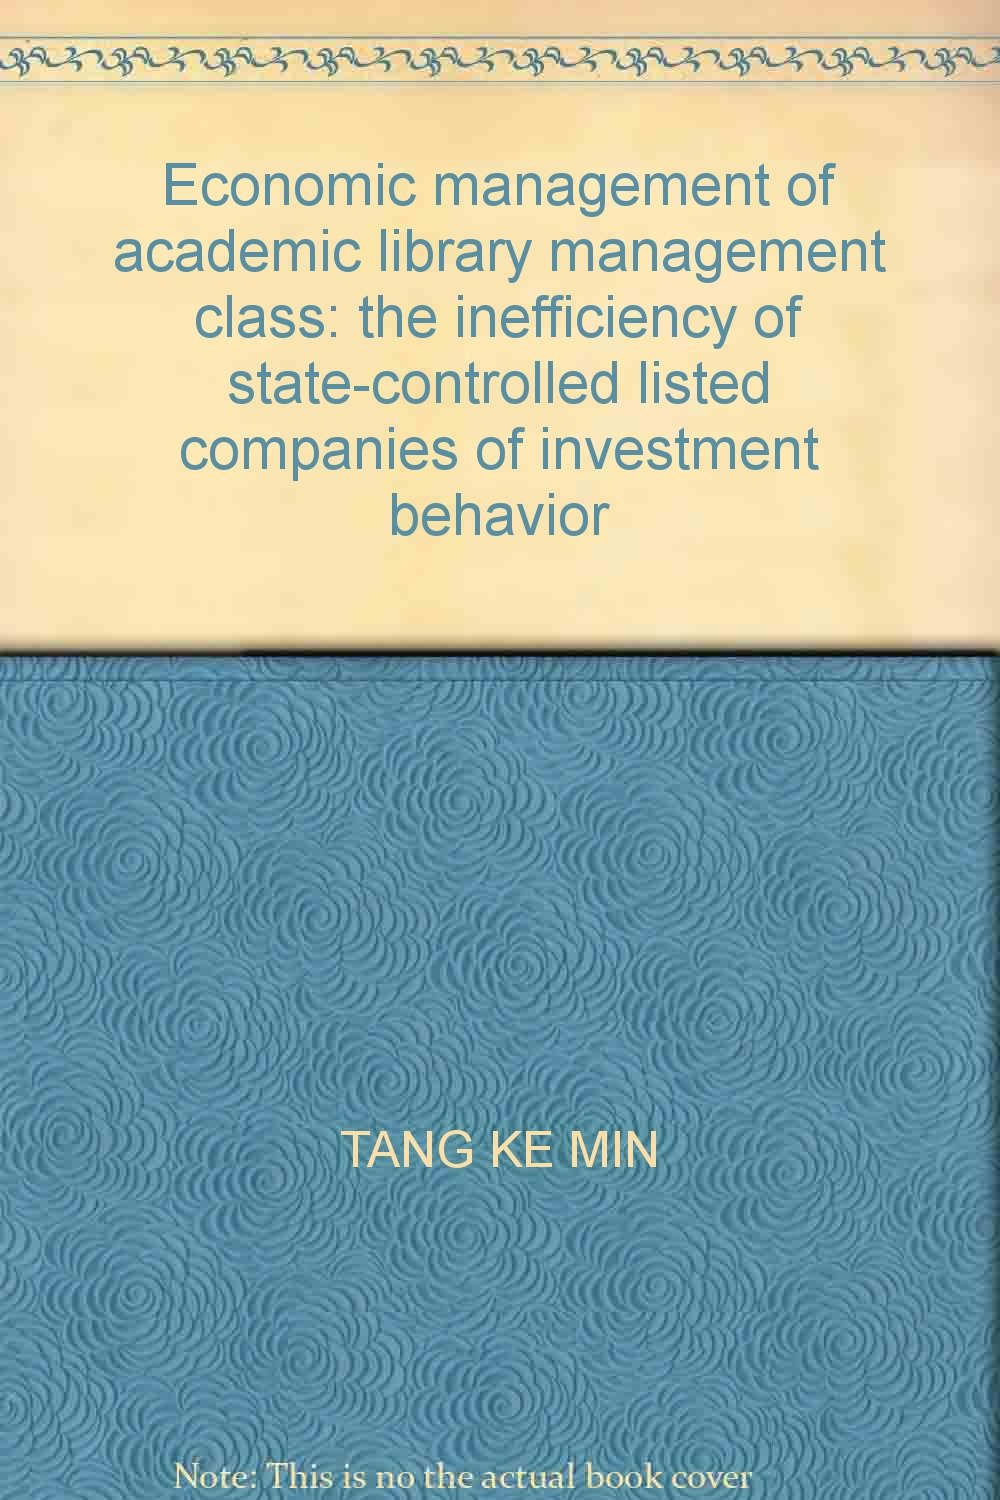 Economic management of academic library management class: the inefficiency of state-controlled listed companies of investment behavior pdf